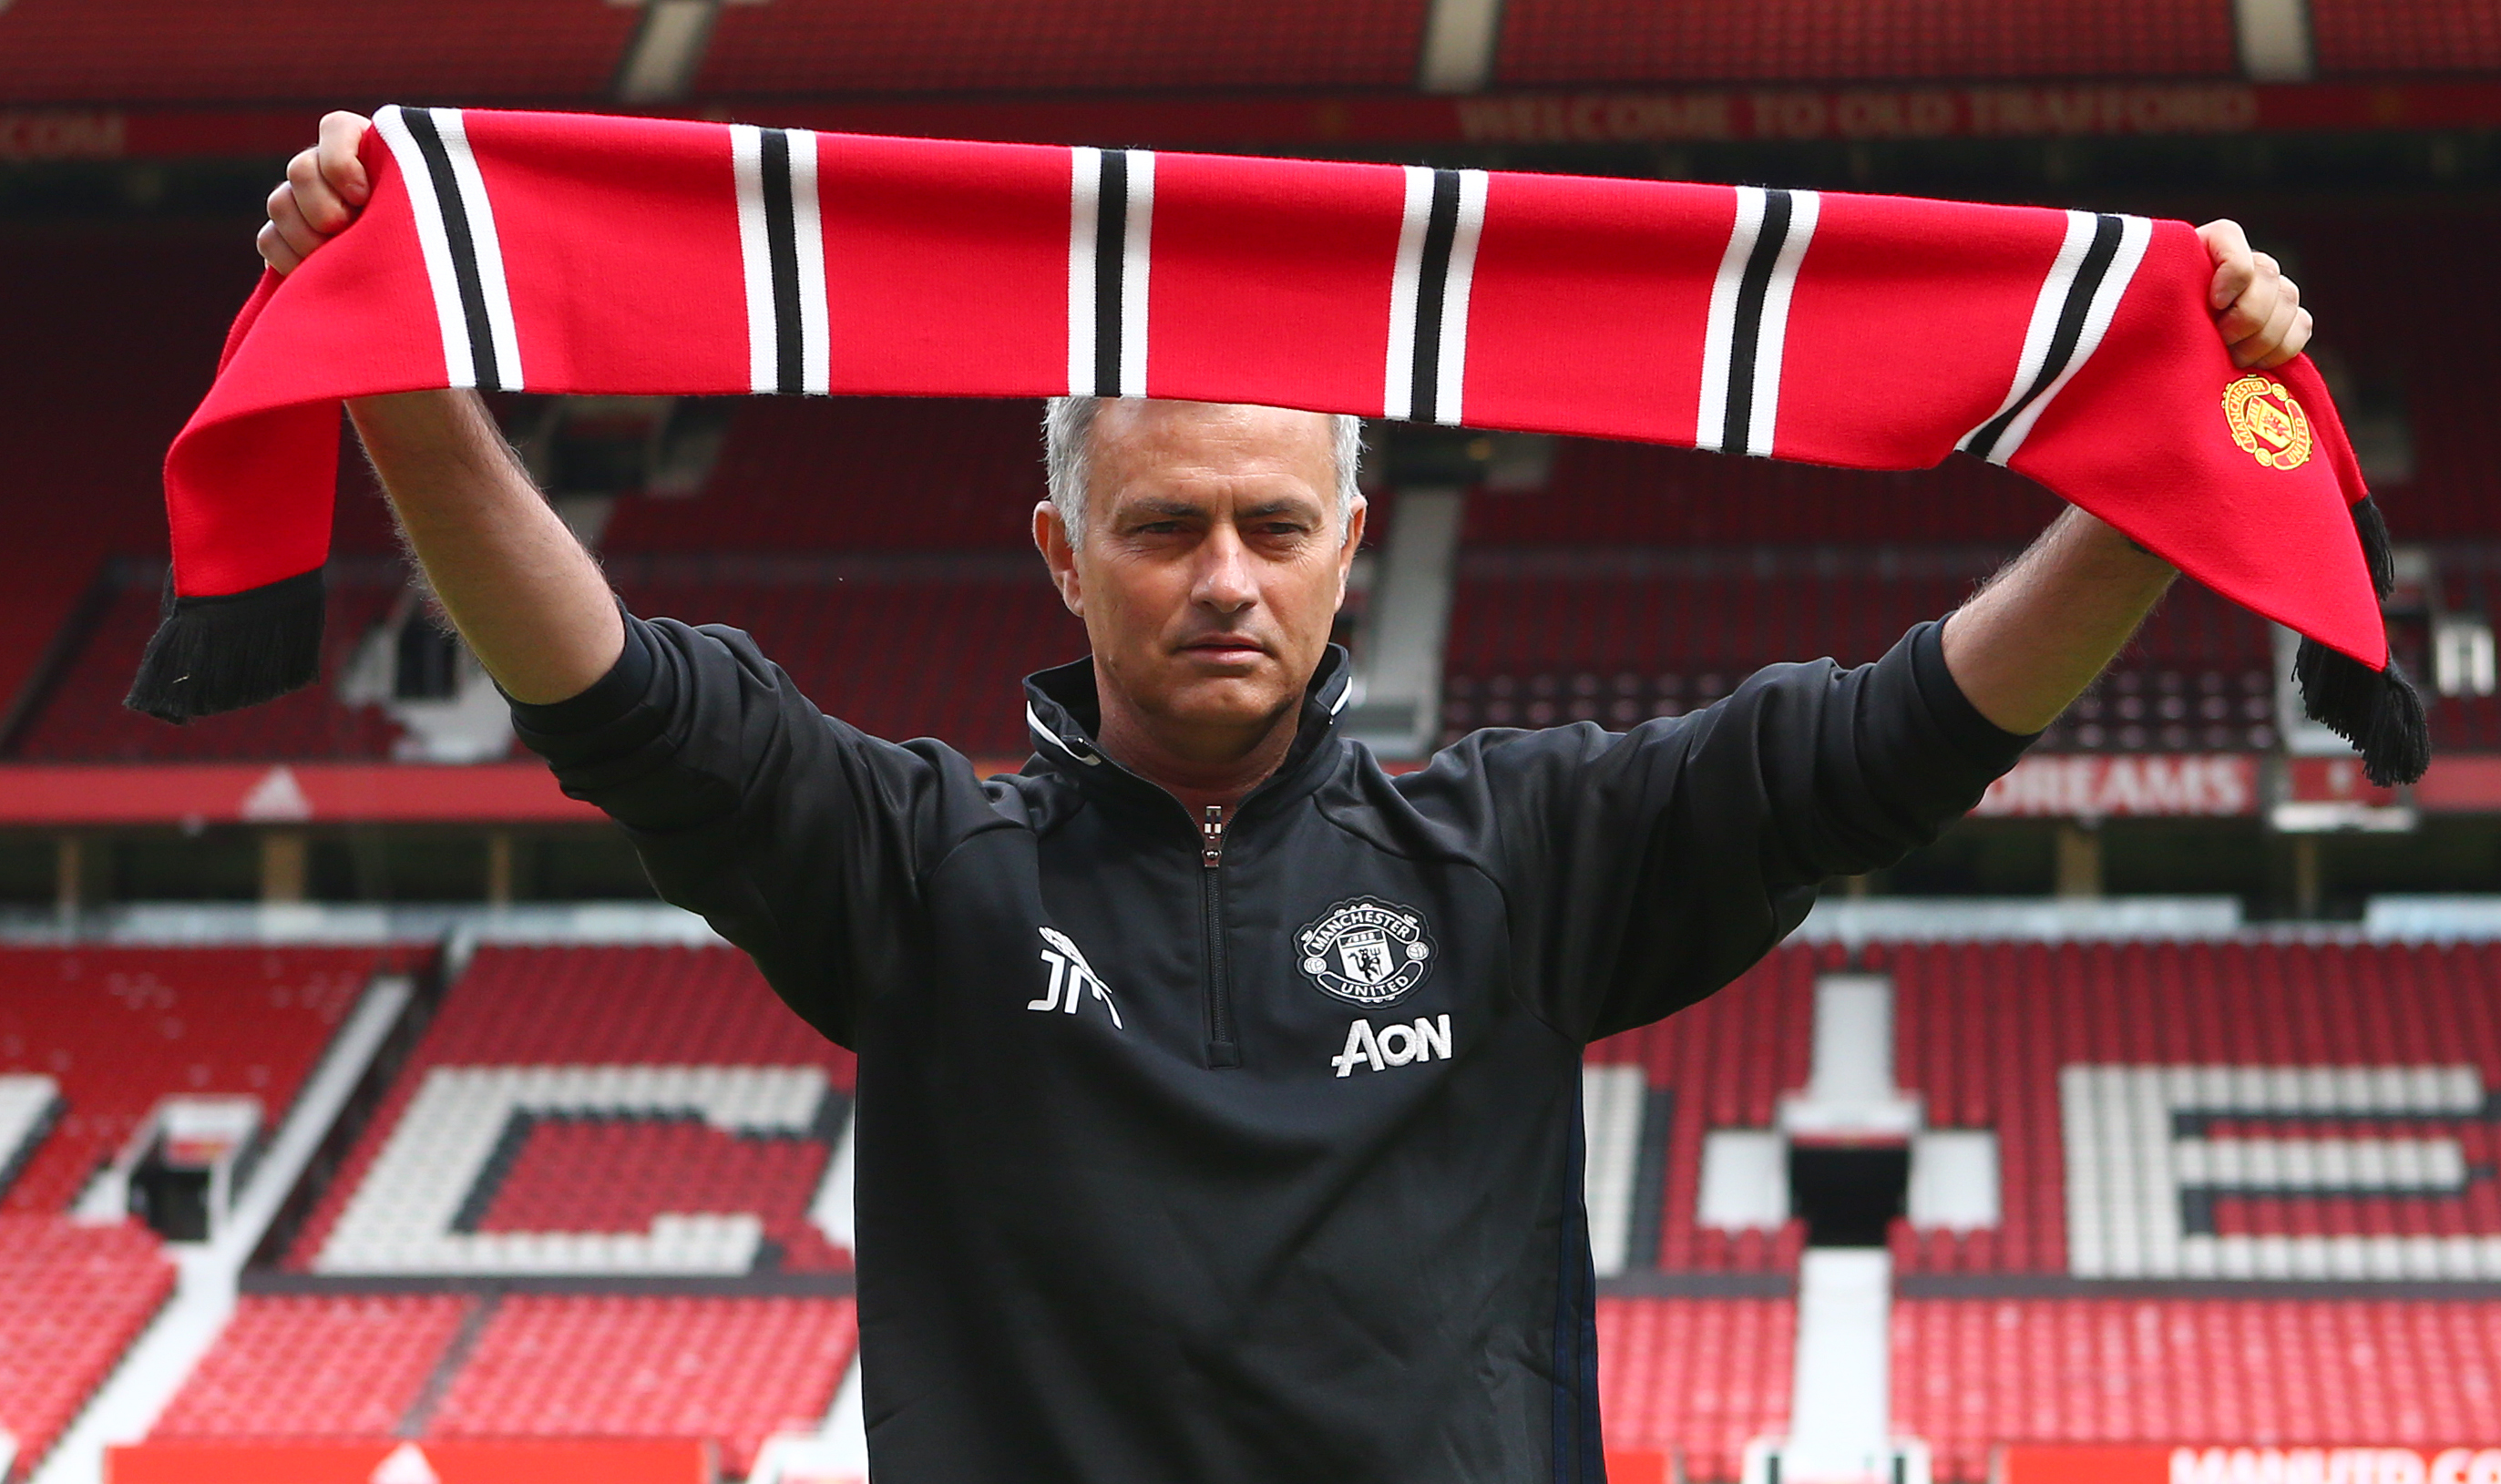 Manchester United Officially Introduce Jose Mourinho as Their New Manager